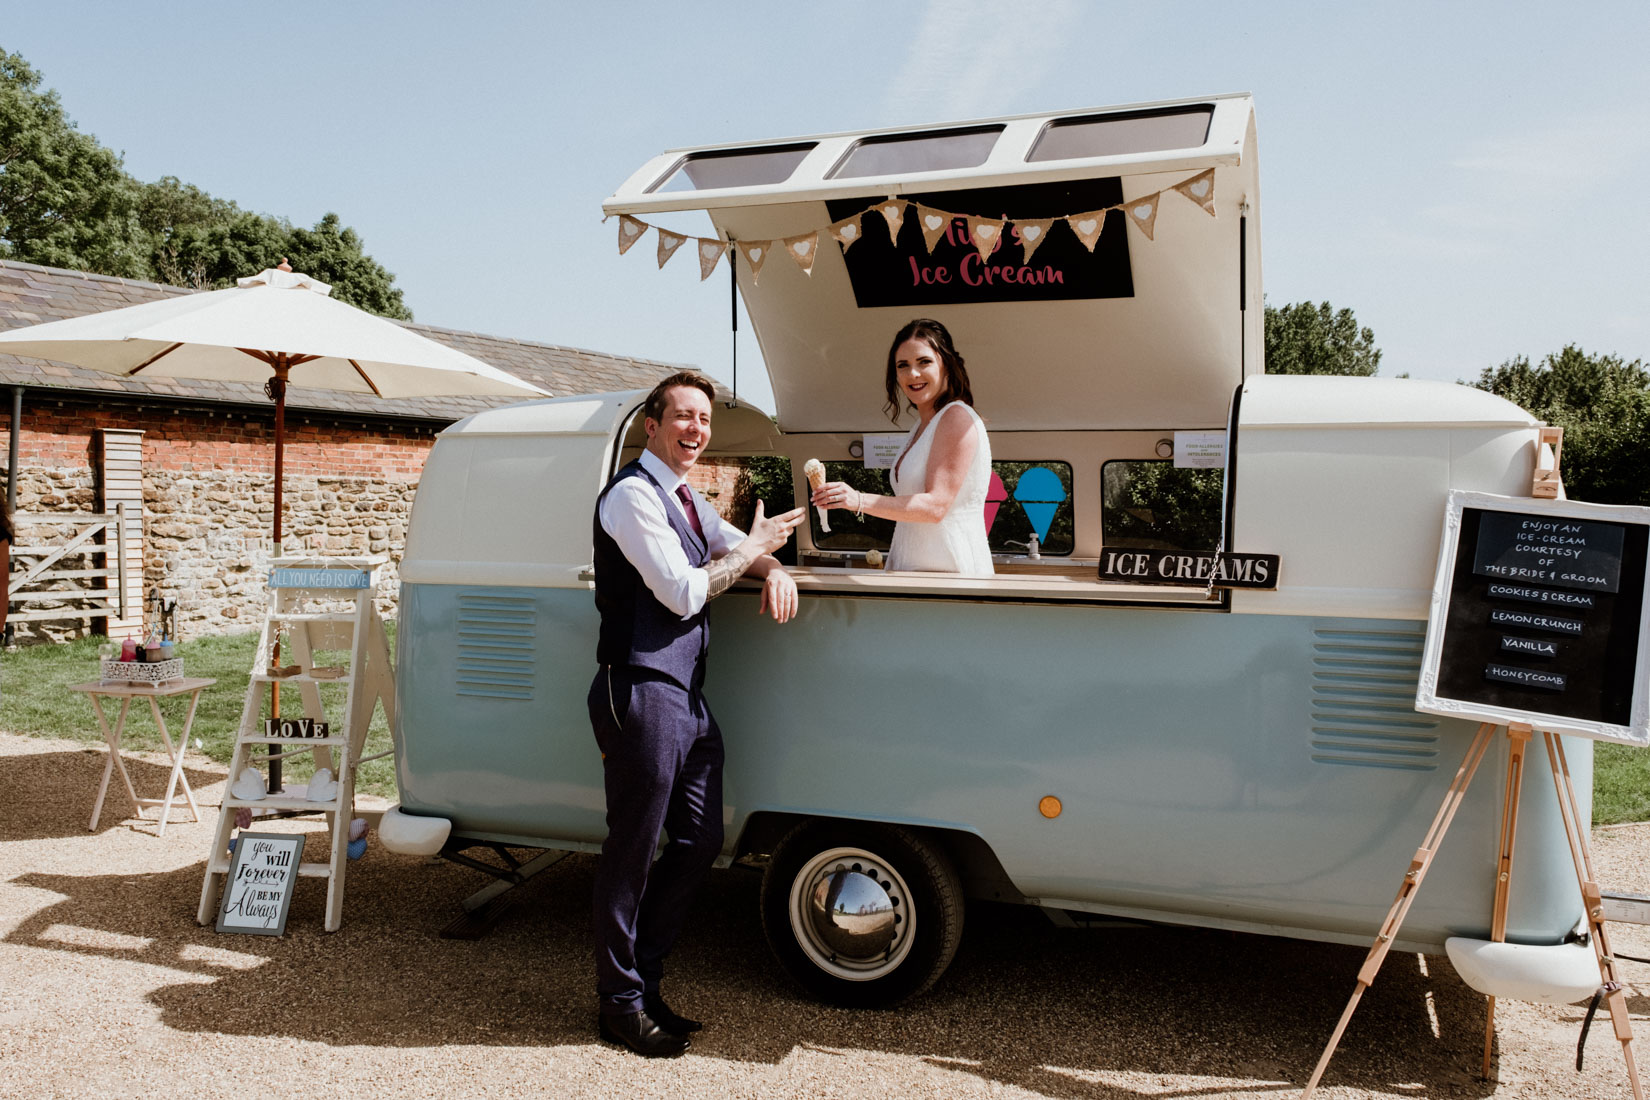 Dodford Manor Wedding of Terri and Scott by Documentary Wedding Photographers Sam and Steve Photography